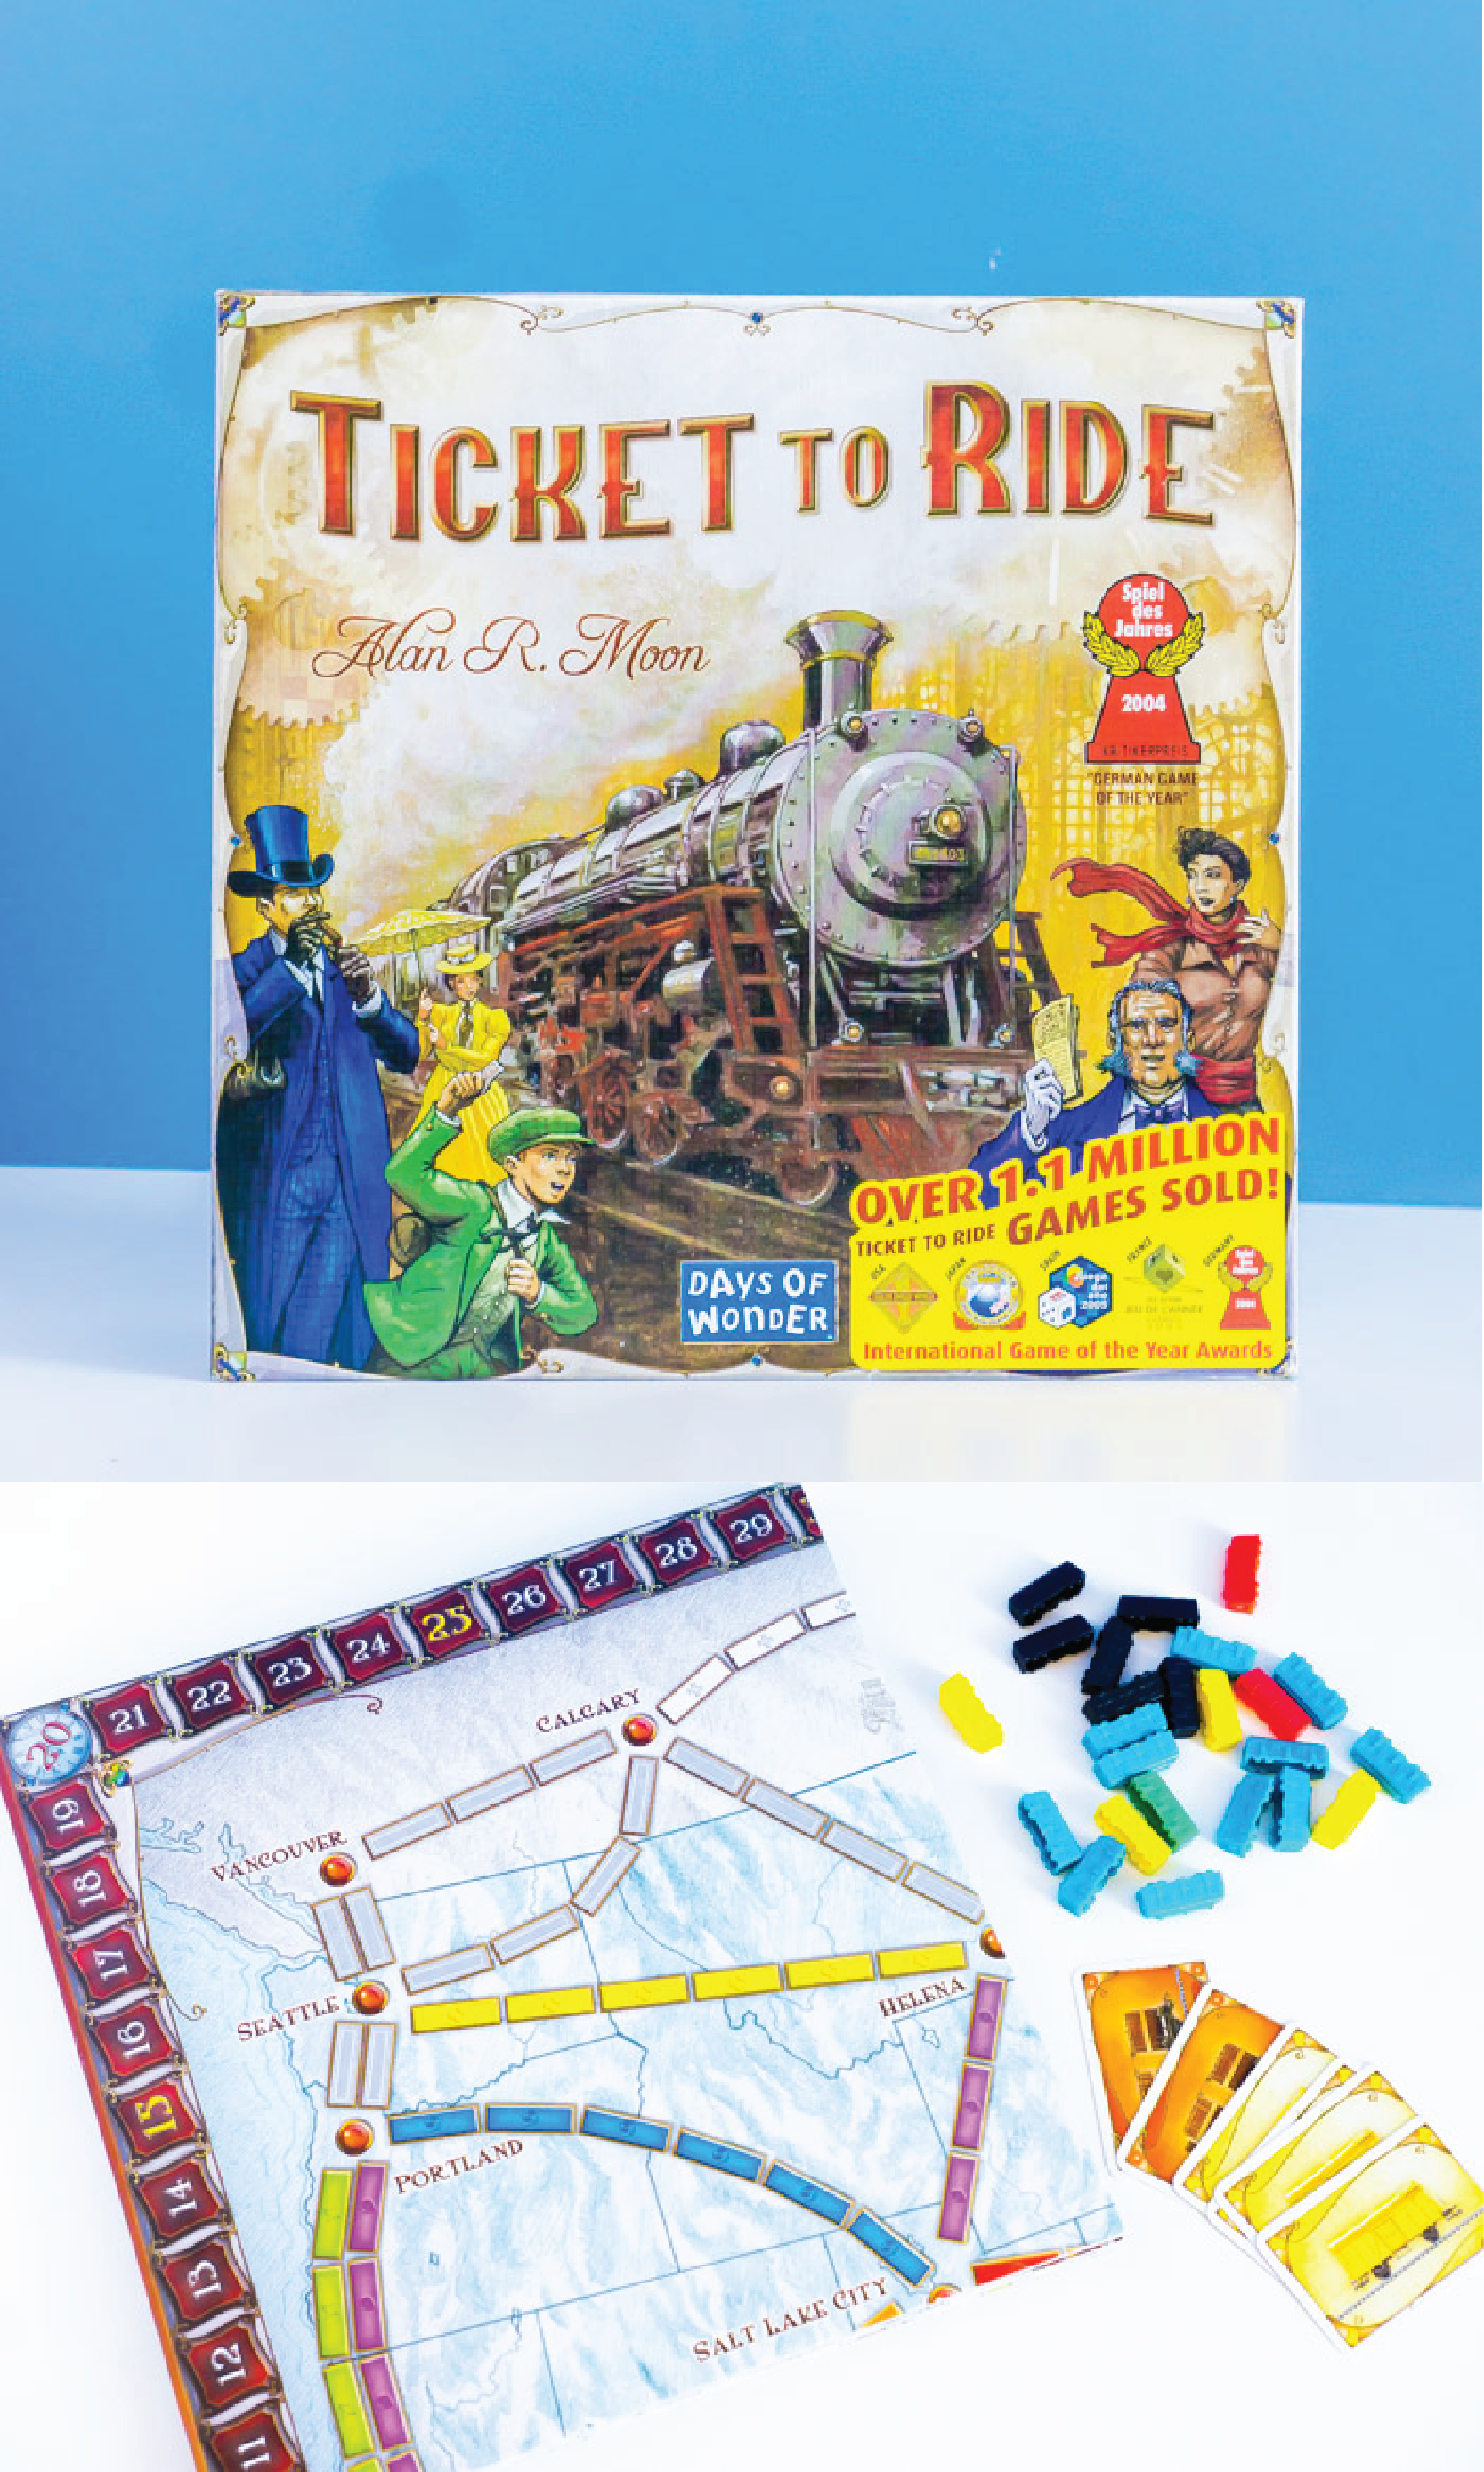 The Ticket to Ride board game is a popular one